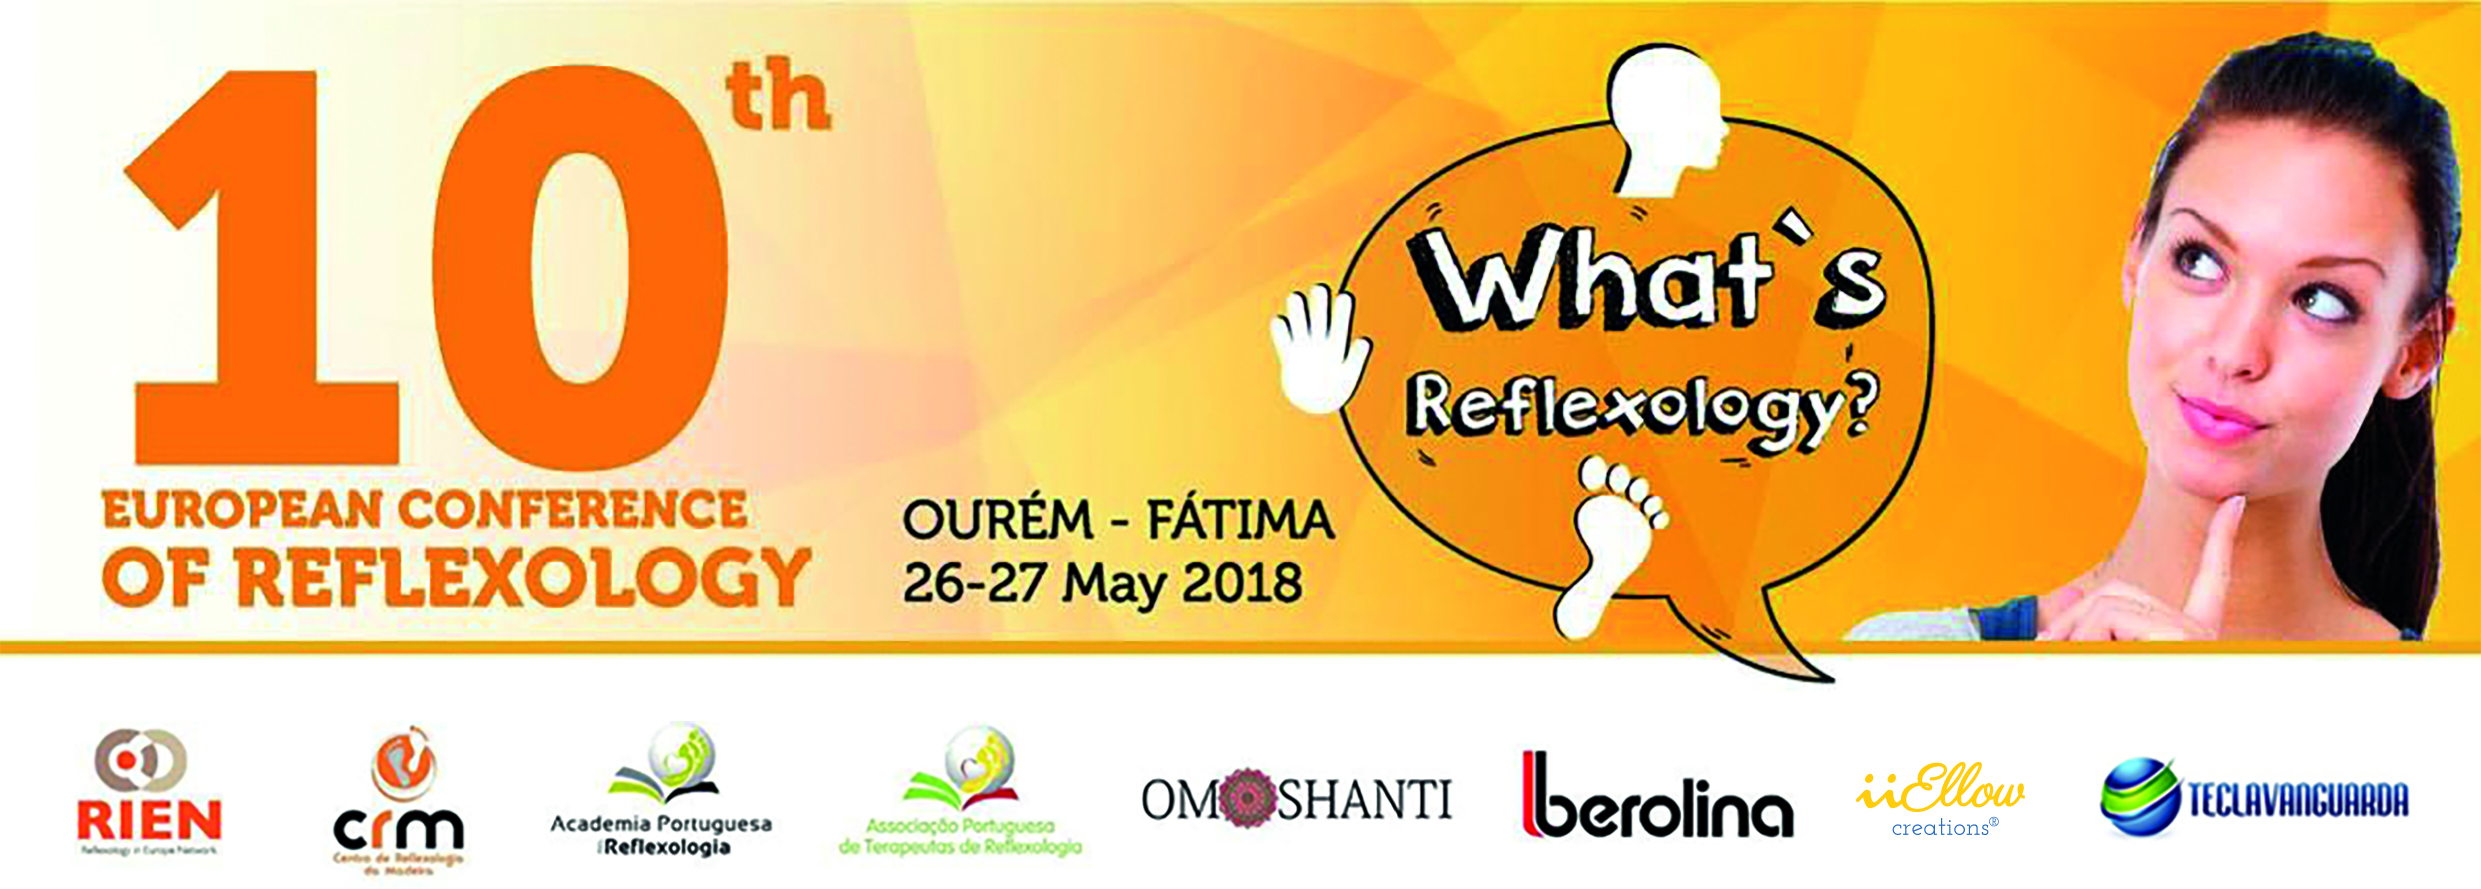 10th European Conference of Reflexology